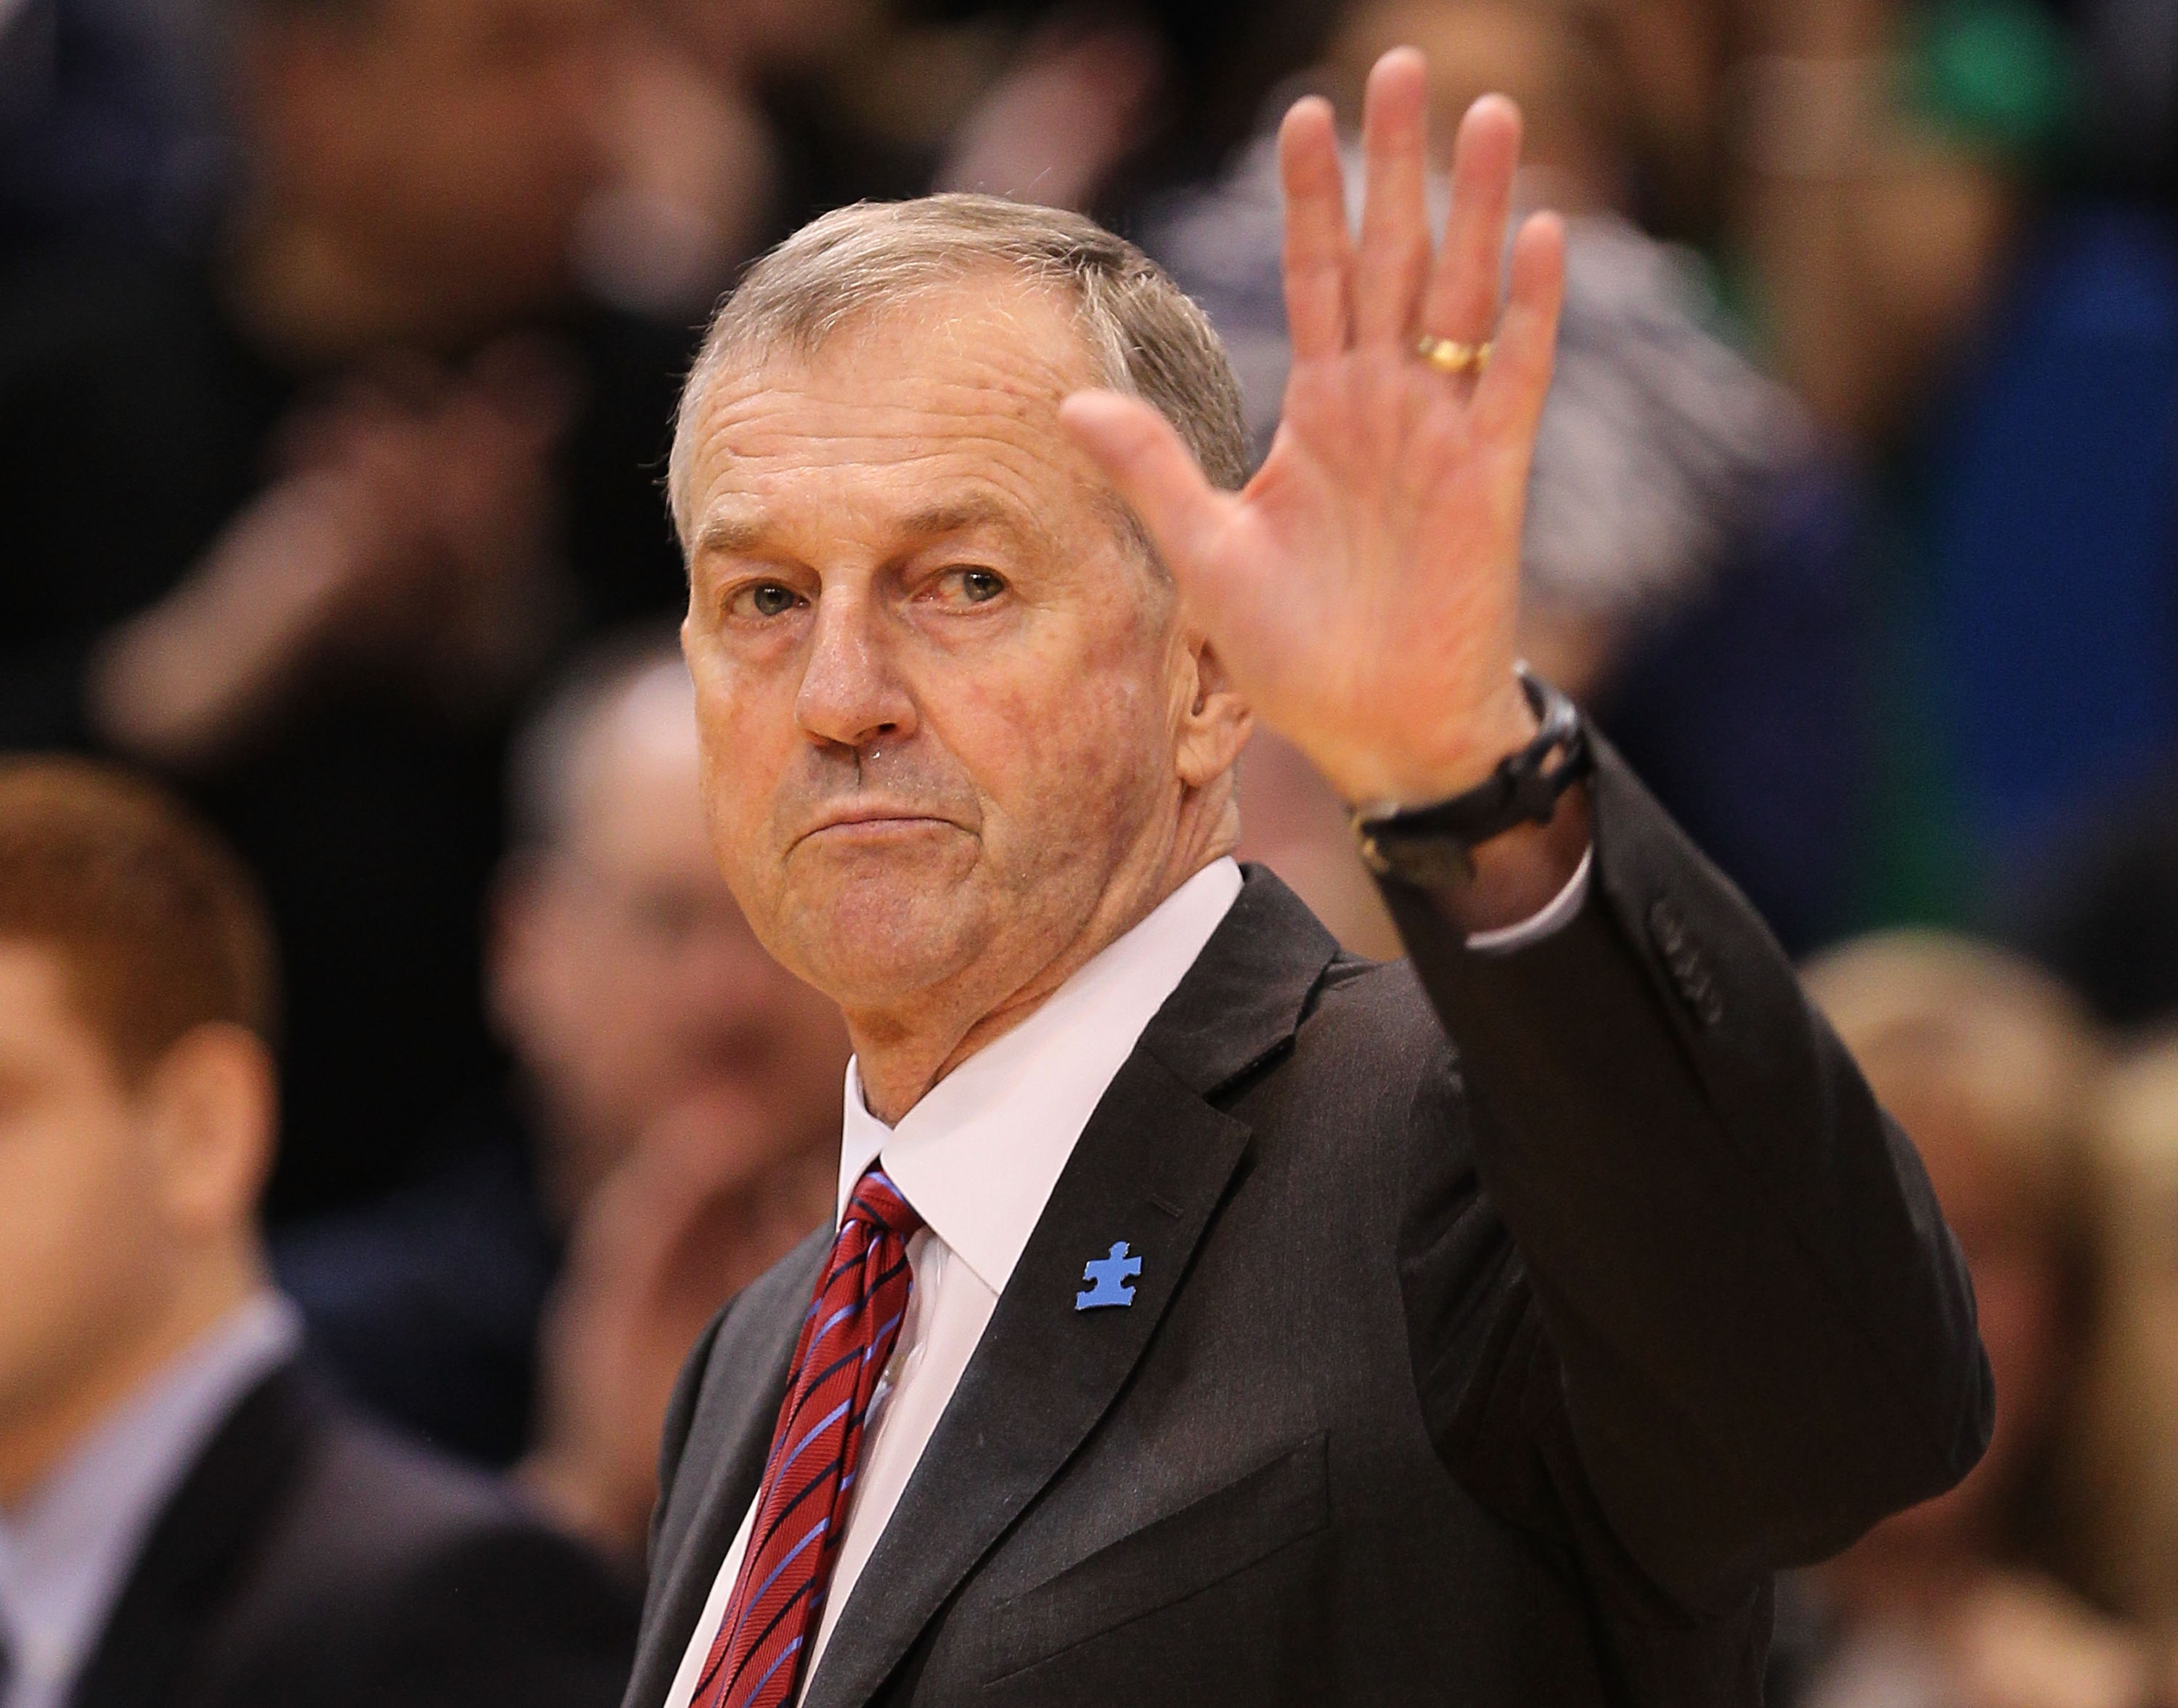 HARTFORD, CT - FEBRUARY 13: Coach Jim Calhoun of the Connecticut Huskies reacts to fans as he walks onto the court before a game against the Cincinnati Bearcats at the XL Center on February 13, 2010 in Hartford, Connecticut. (Photo by Jim Rogash/Getty Ima